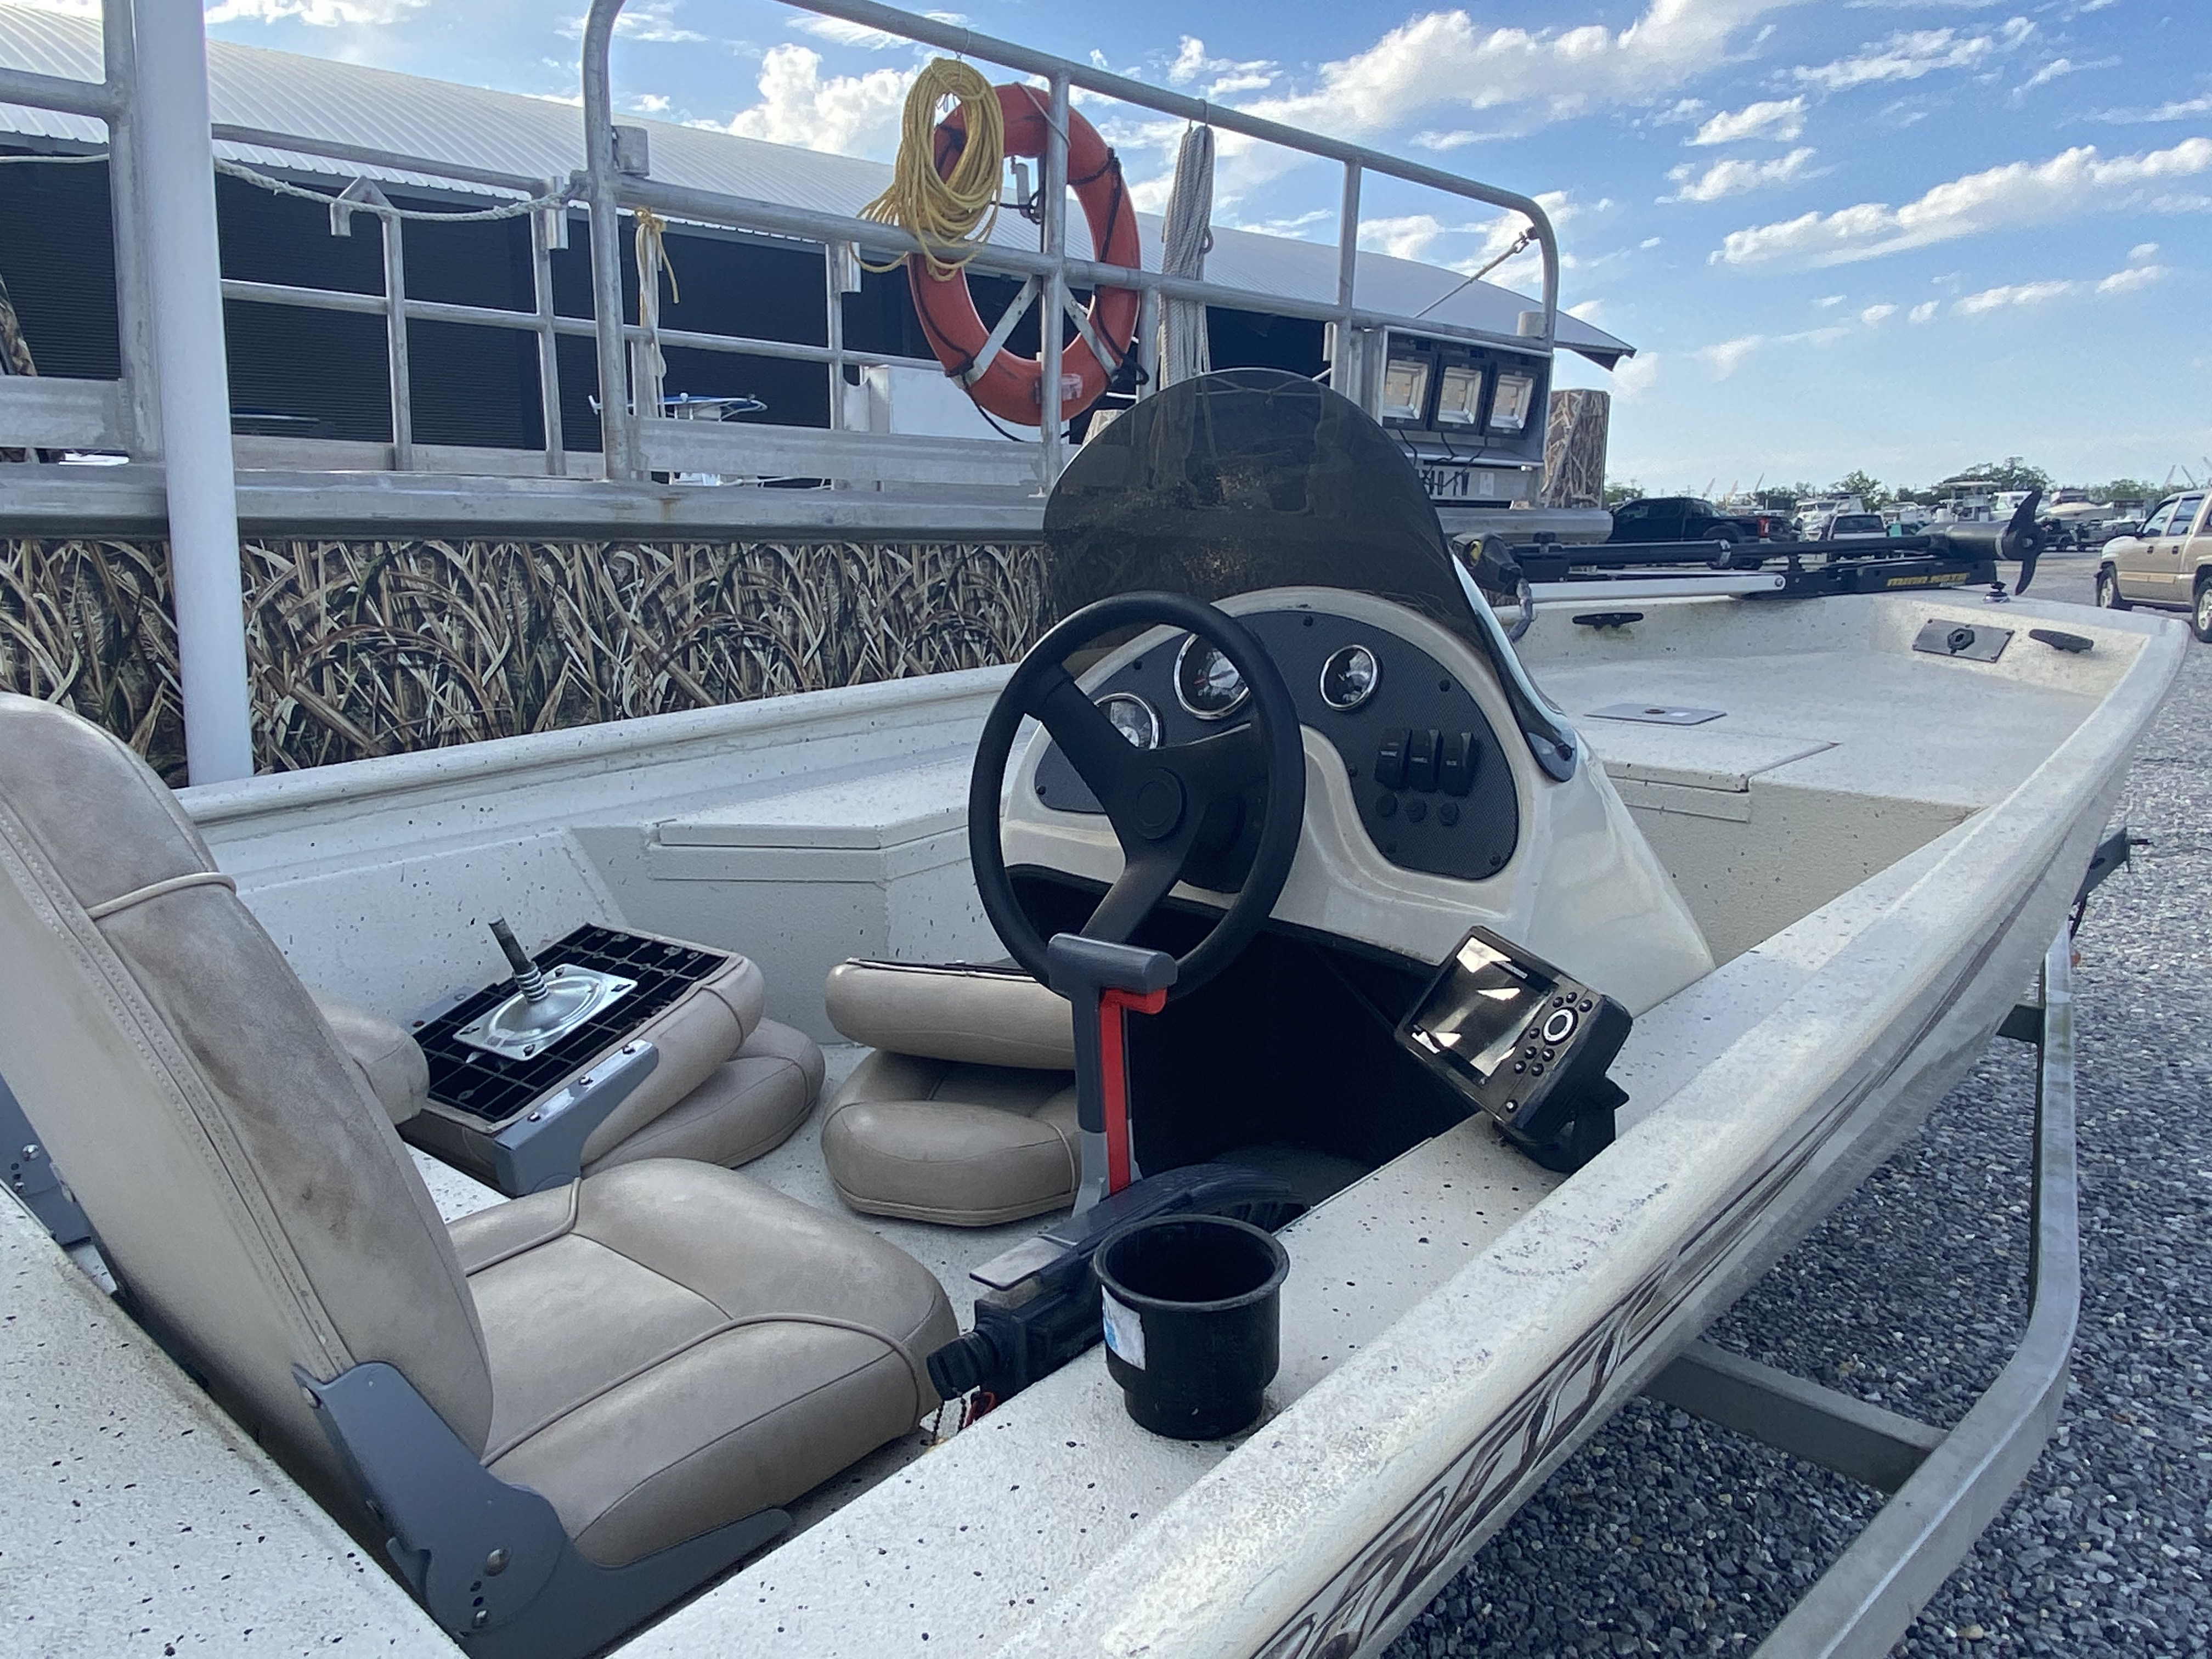 2014 Xpress boat for sale, model of the boat is 18 cc & Image # 5 of 6